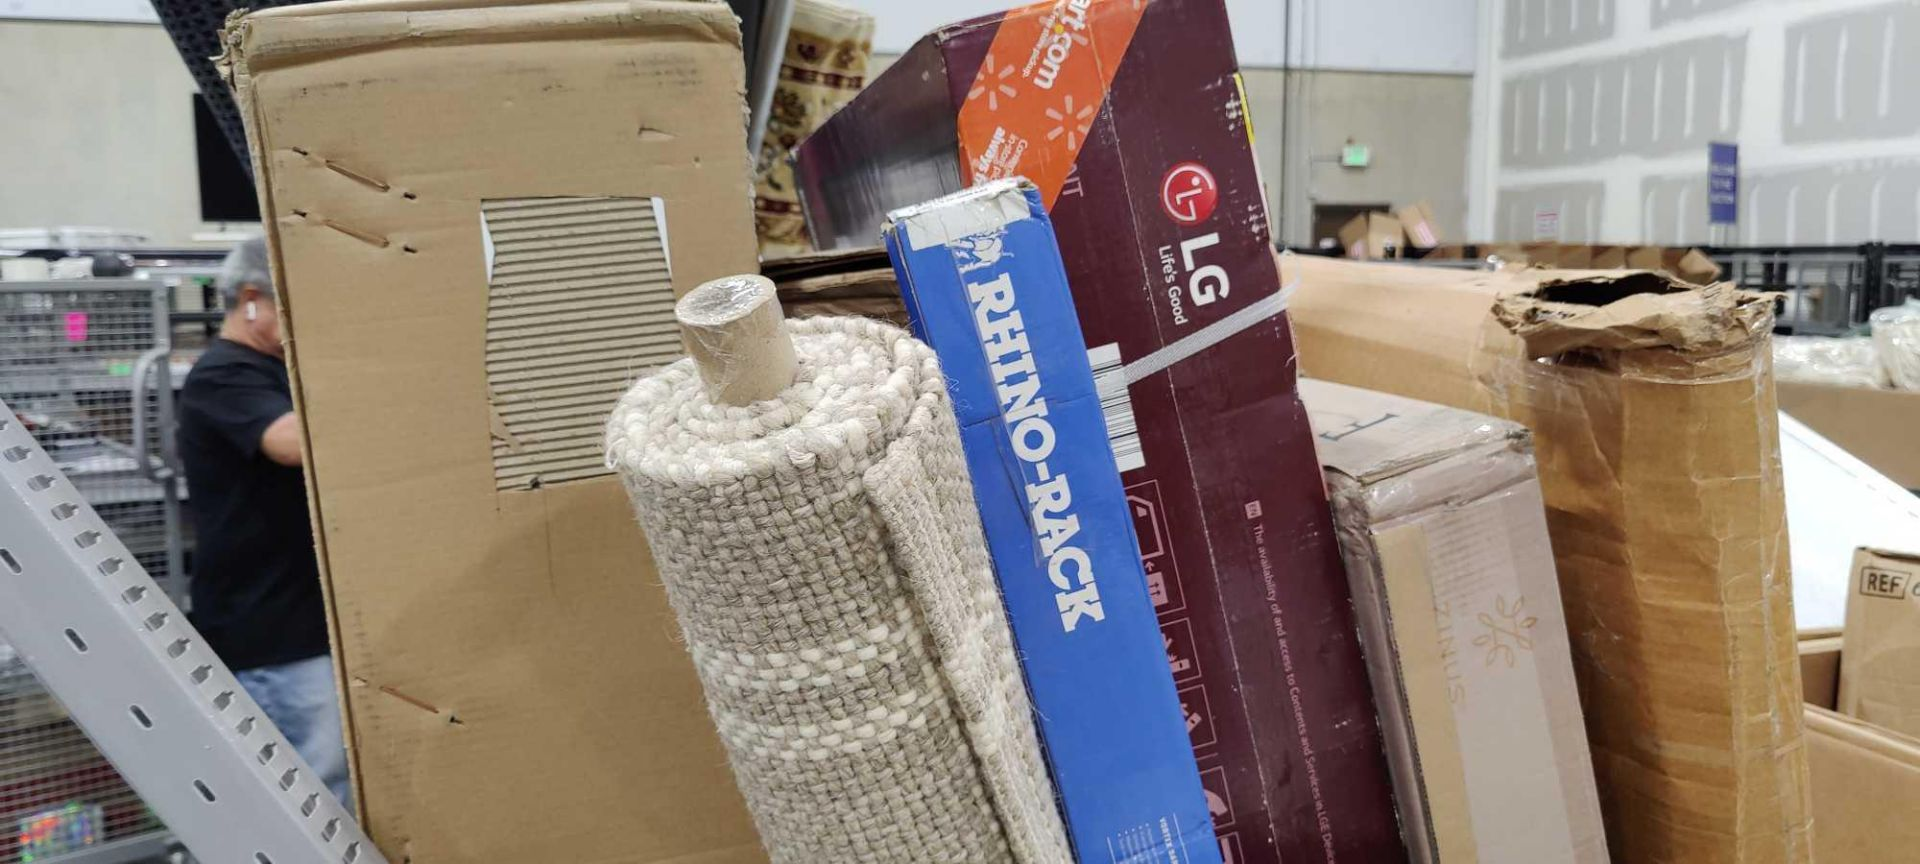 Two Pallets - Image 10 of 11